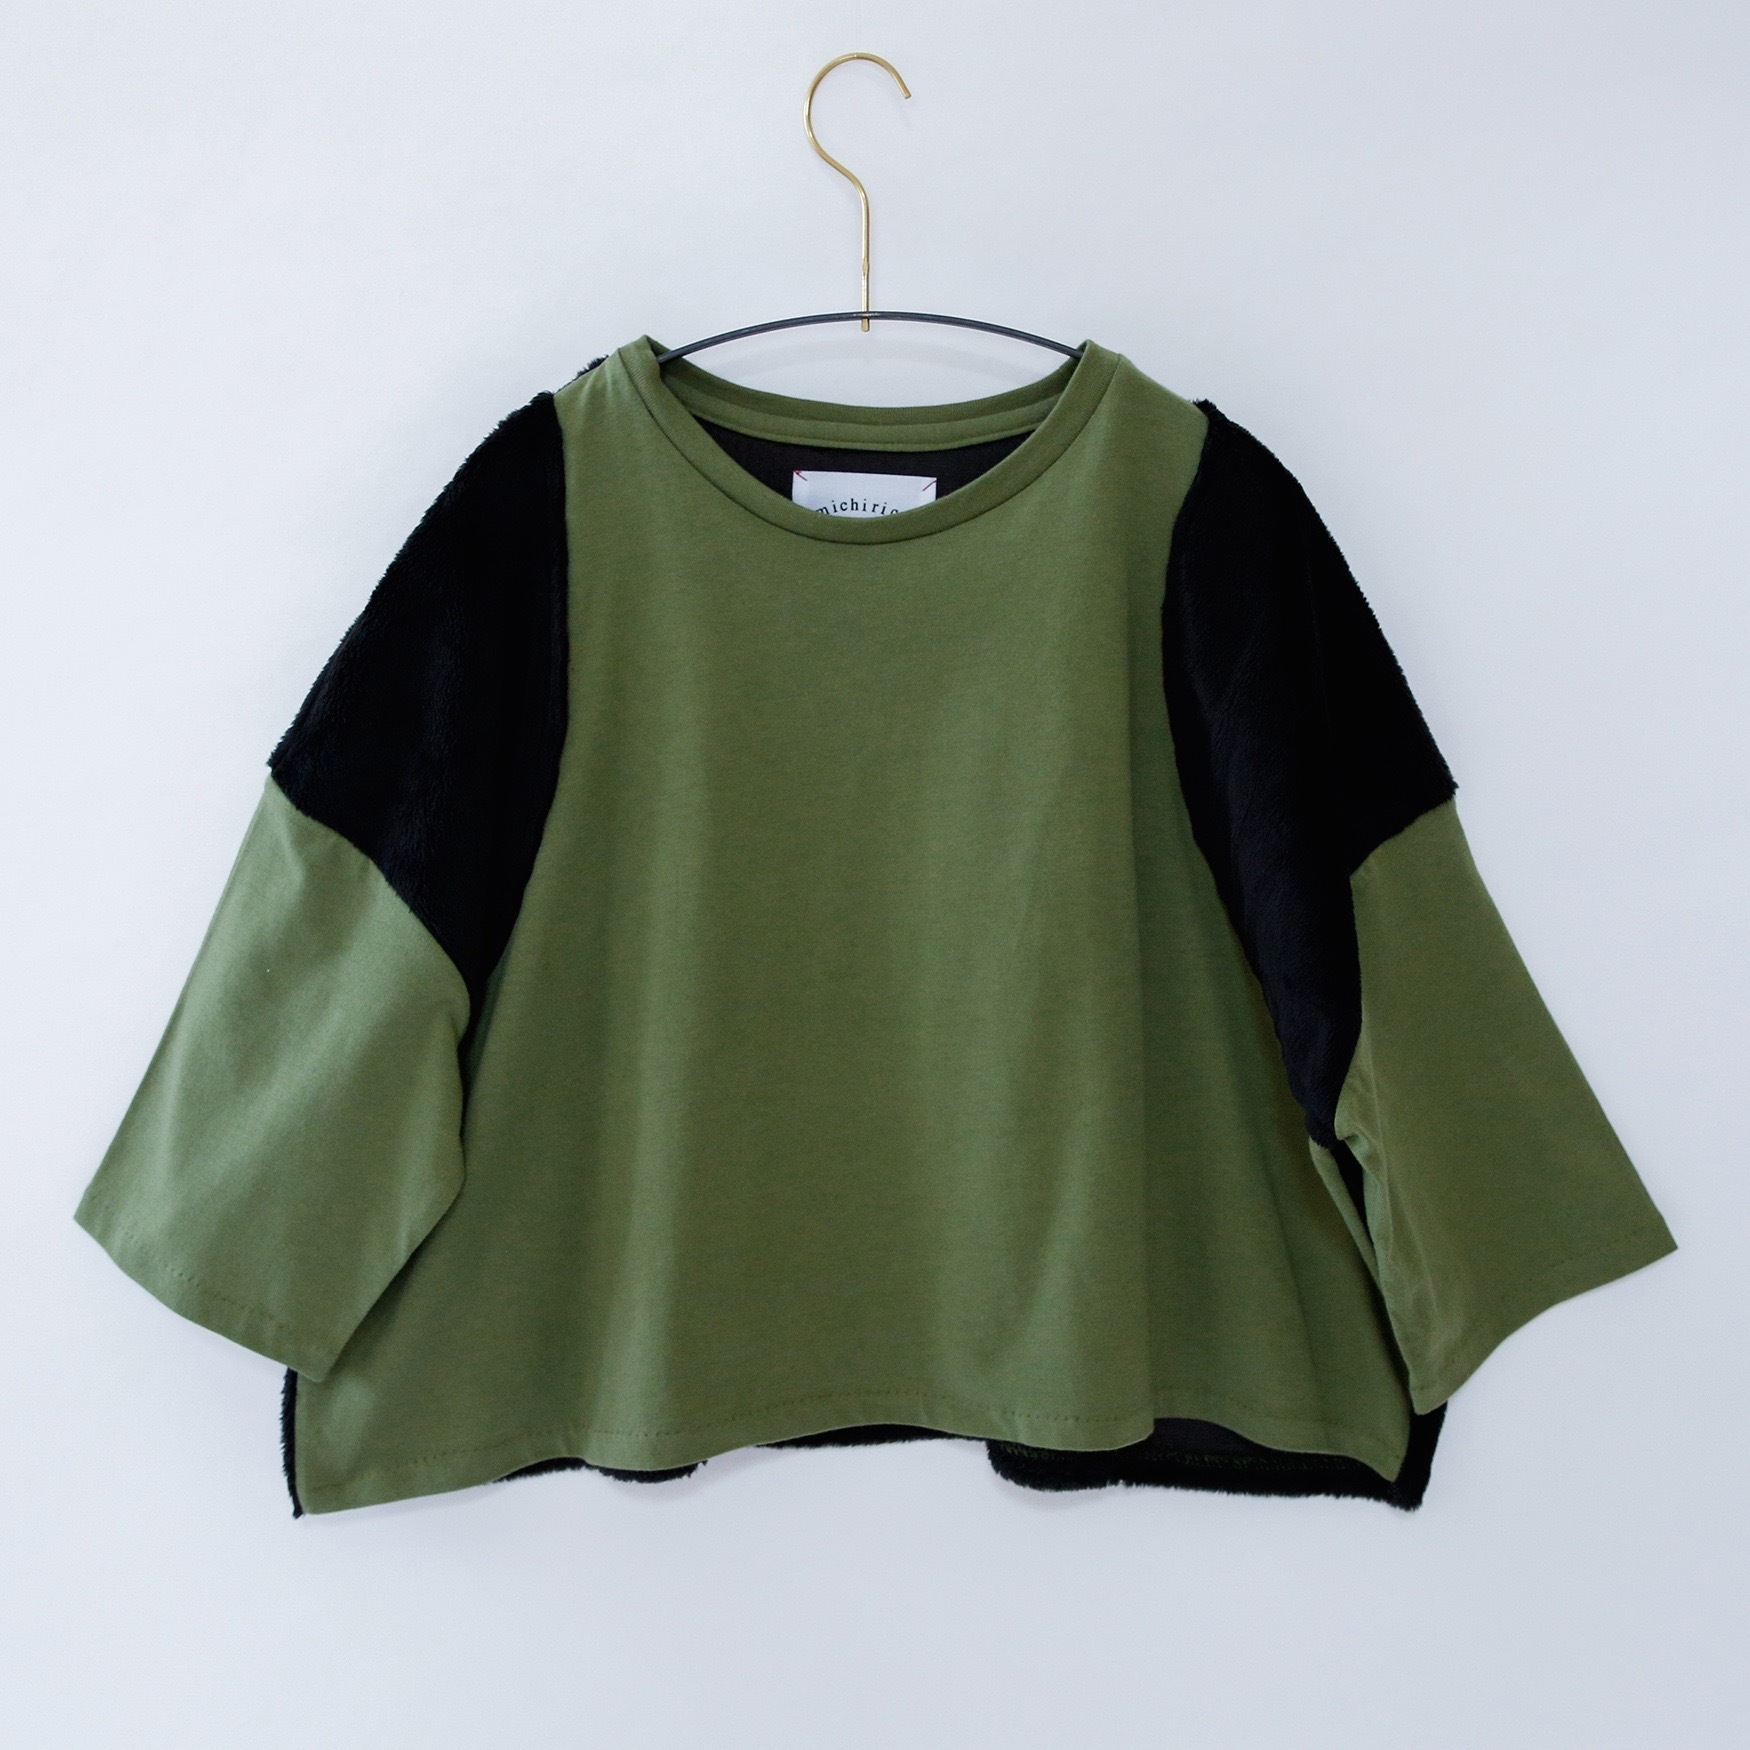 《michirico 2020AW》Boa tops / military green / L・XL・XXL